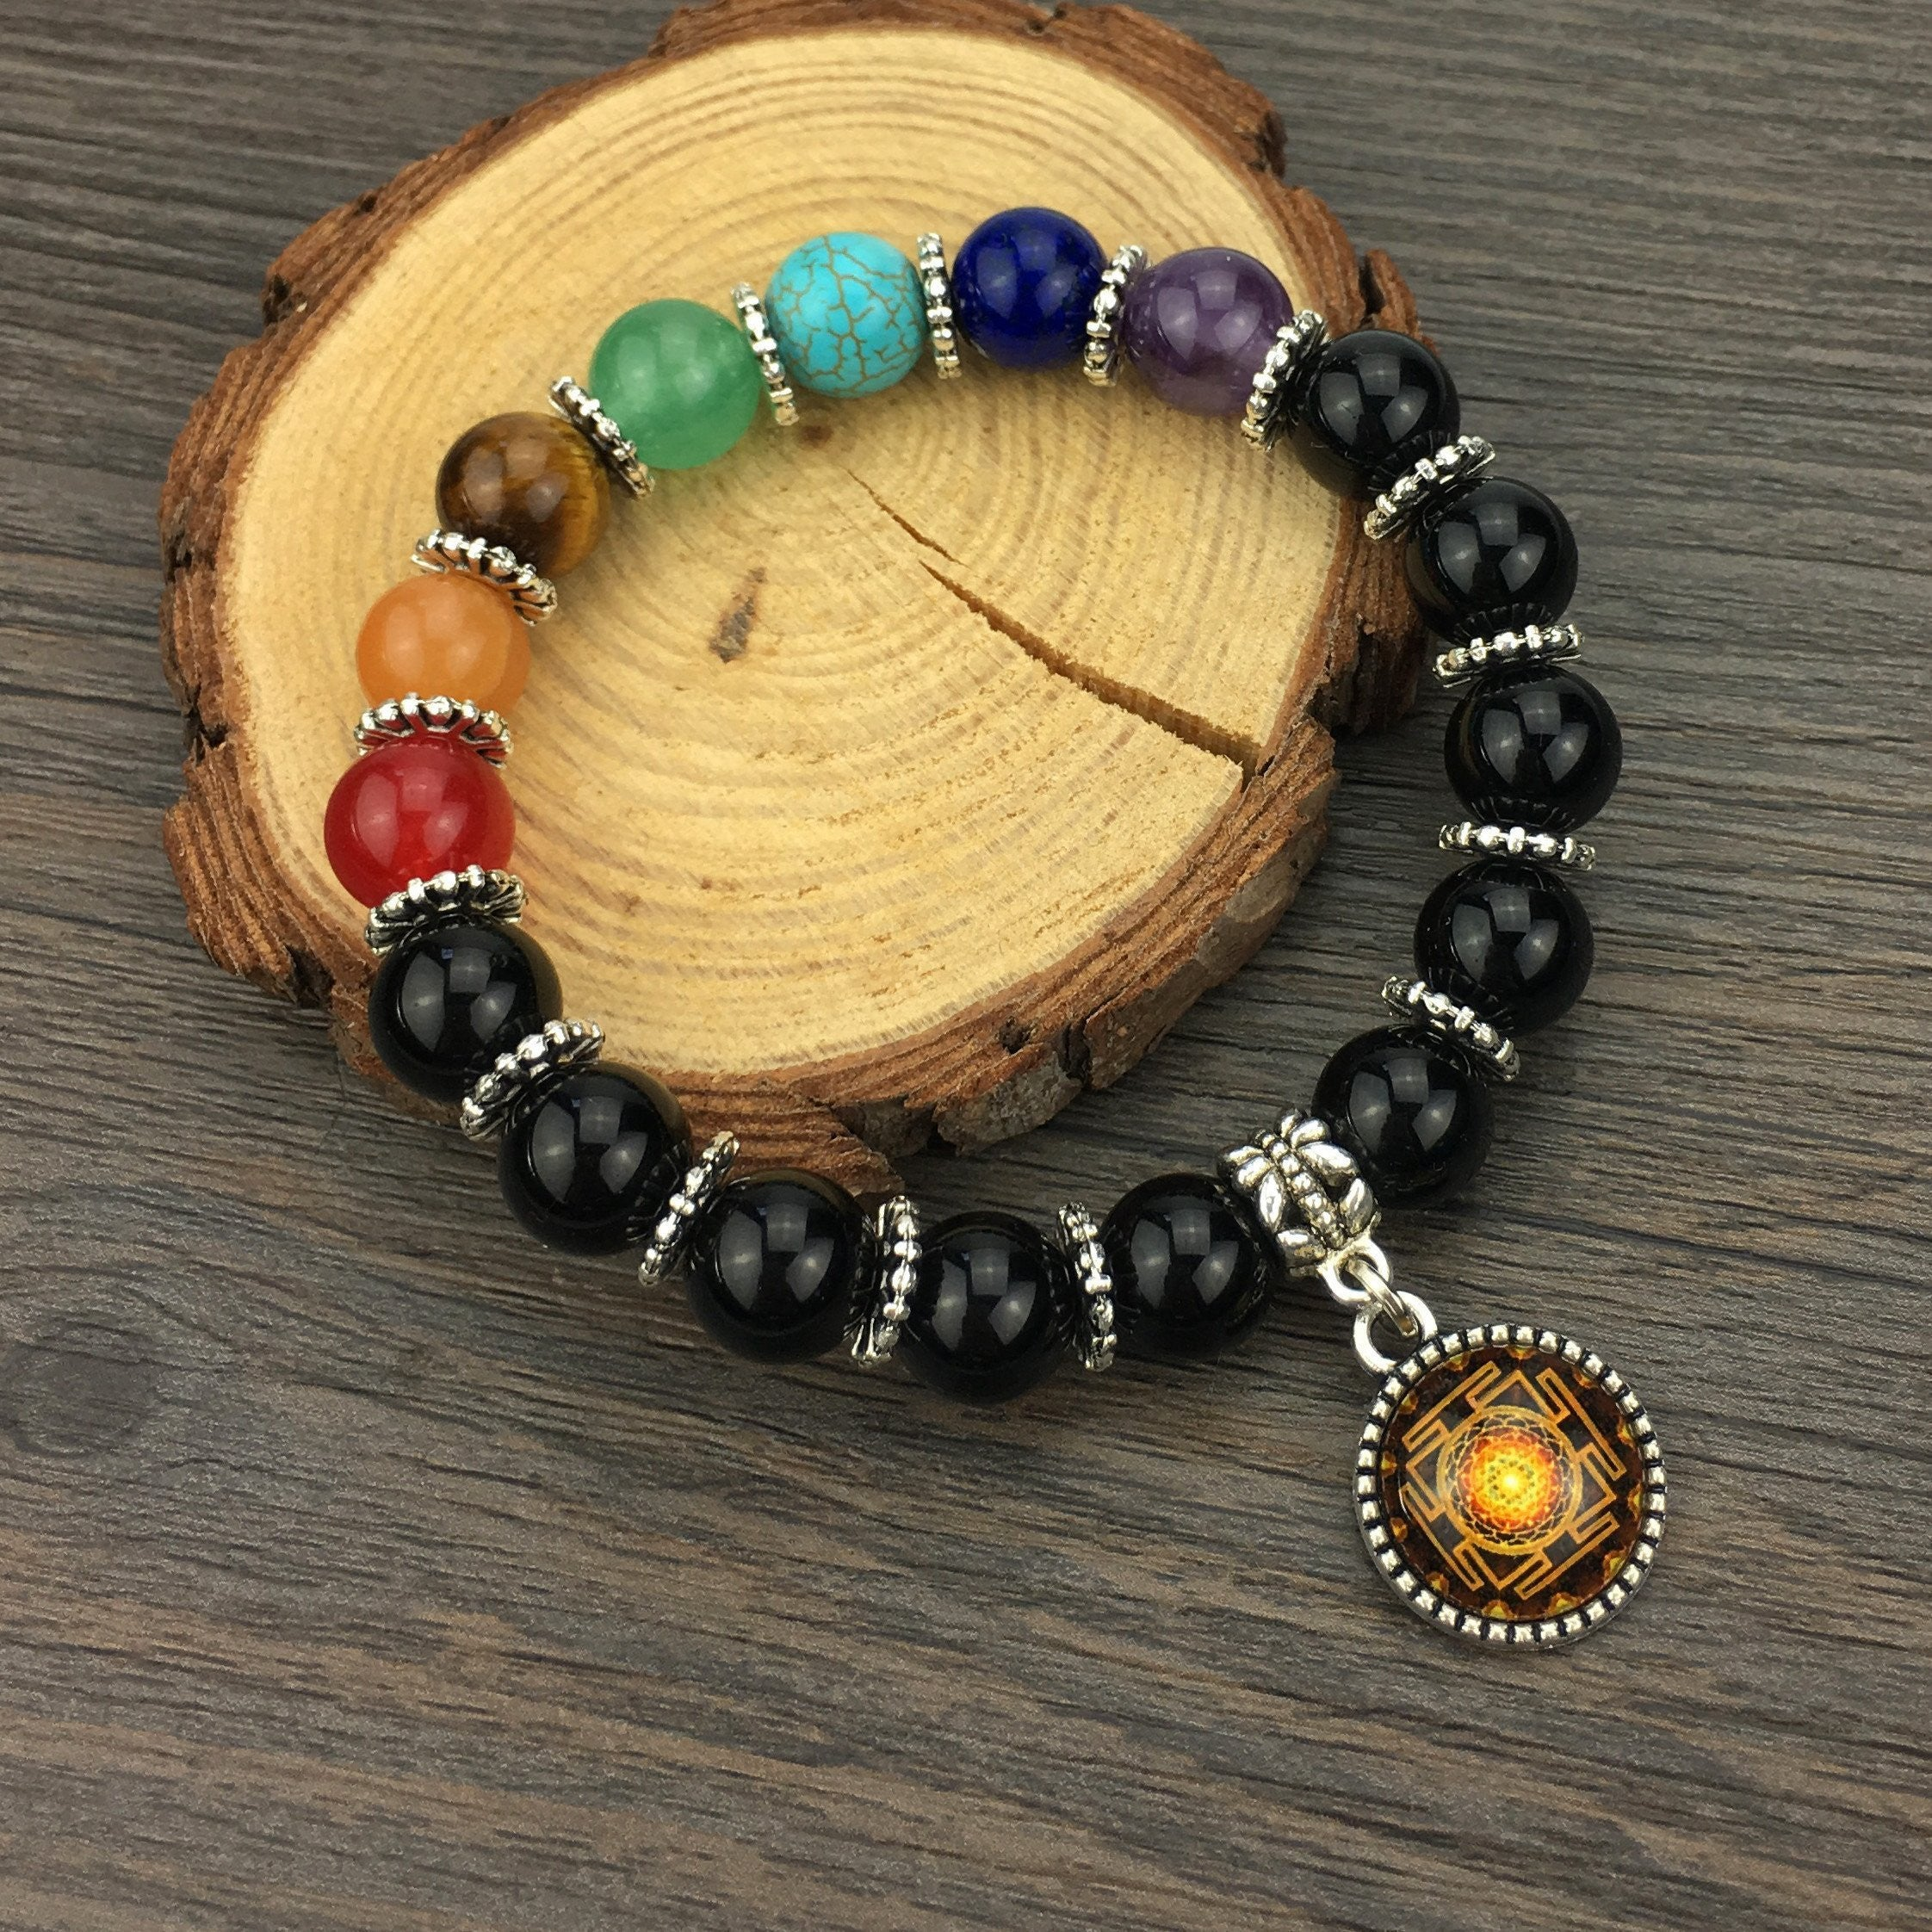 7 Chakra Sacred Sri Yantra Charm Bracelet Project Yourself